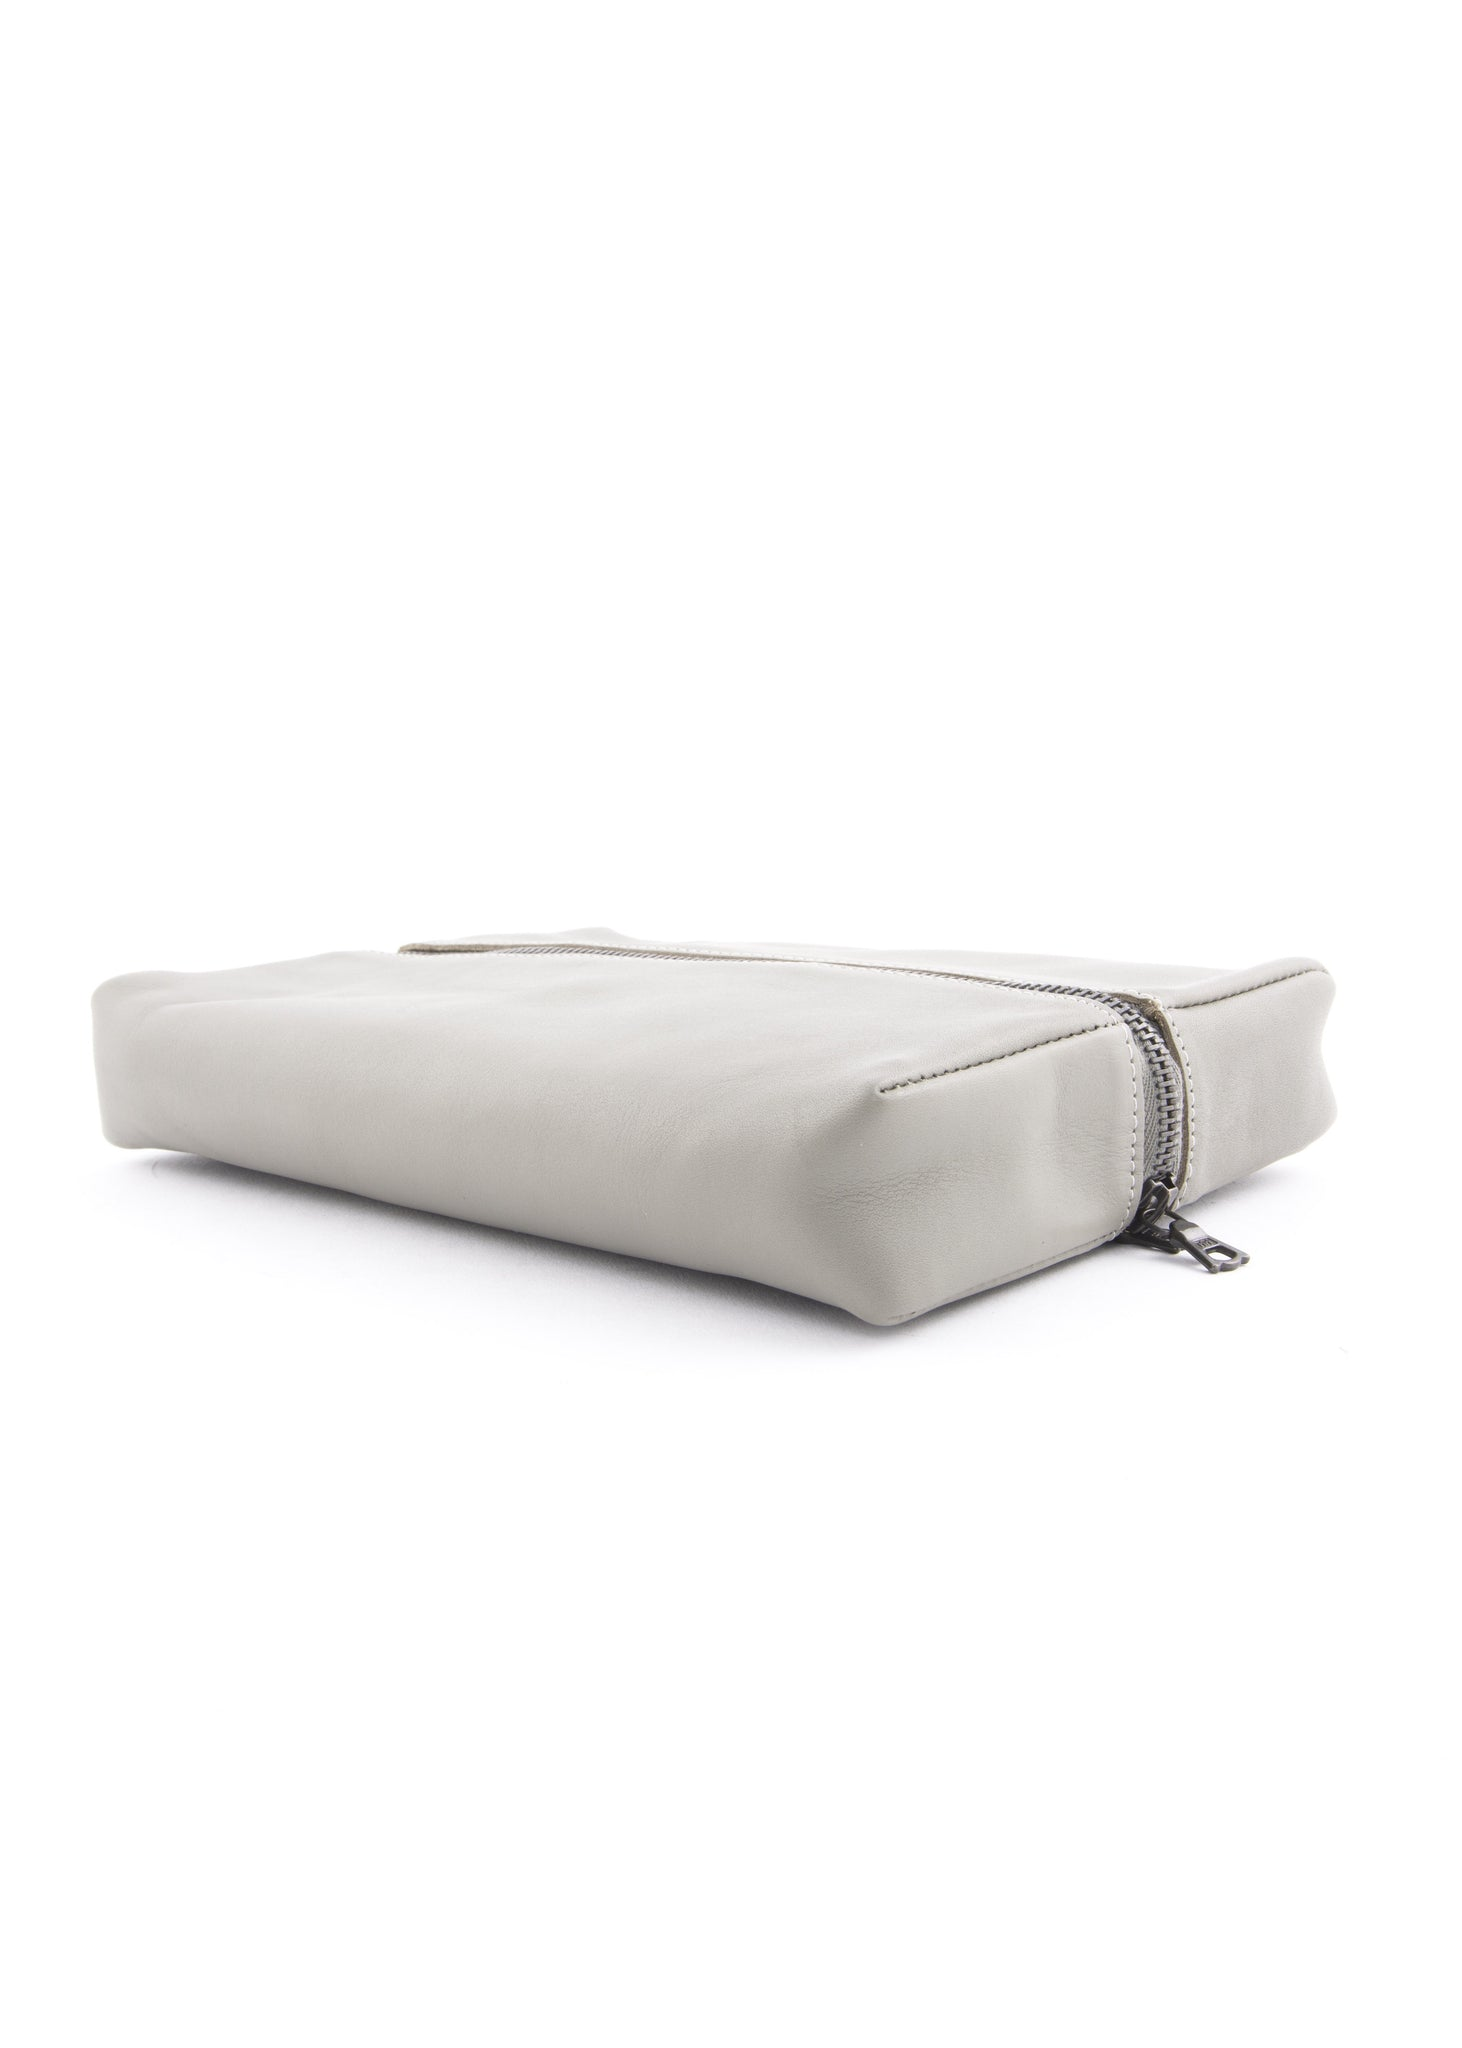 Petit Sac de Toilette en Cuir Gris|Grey Leather Small Toiletry Bag